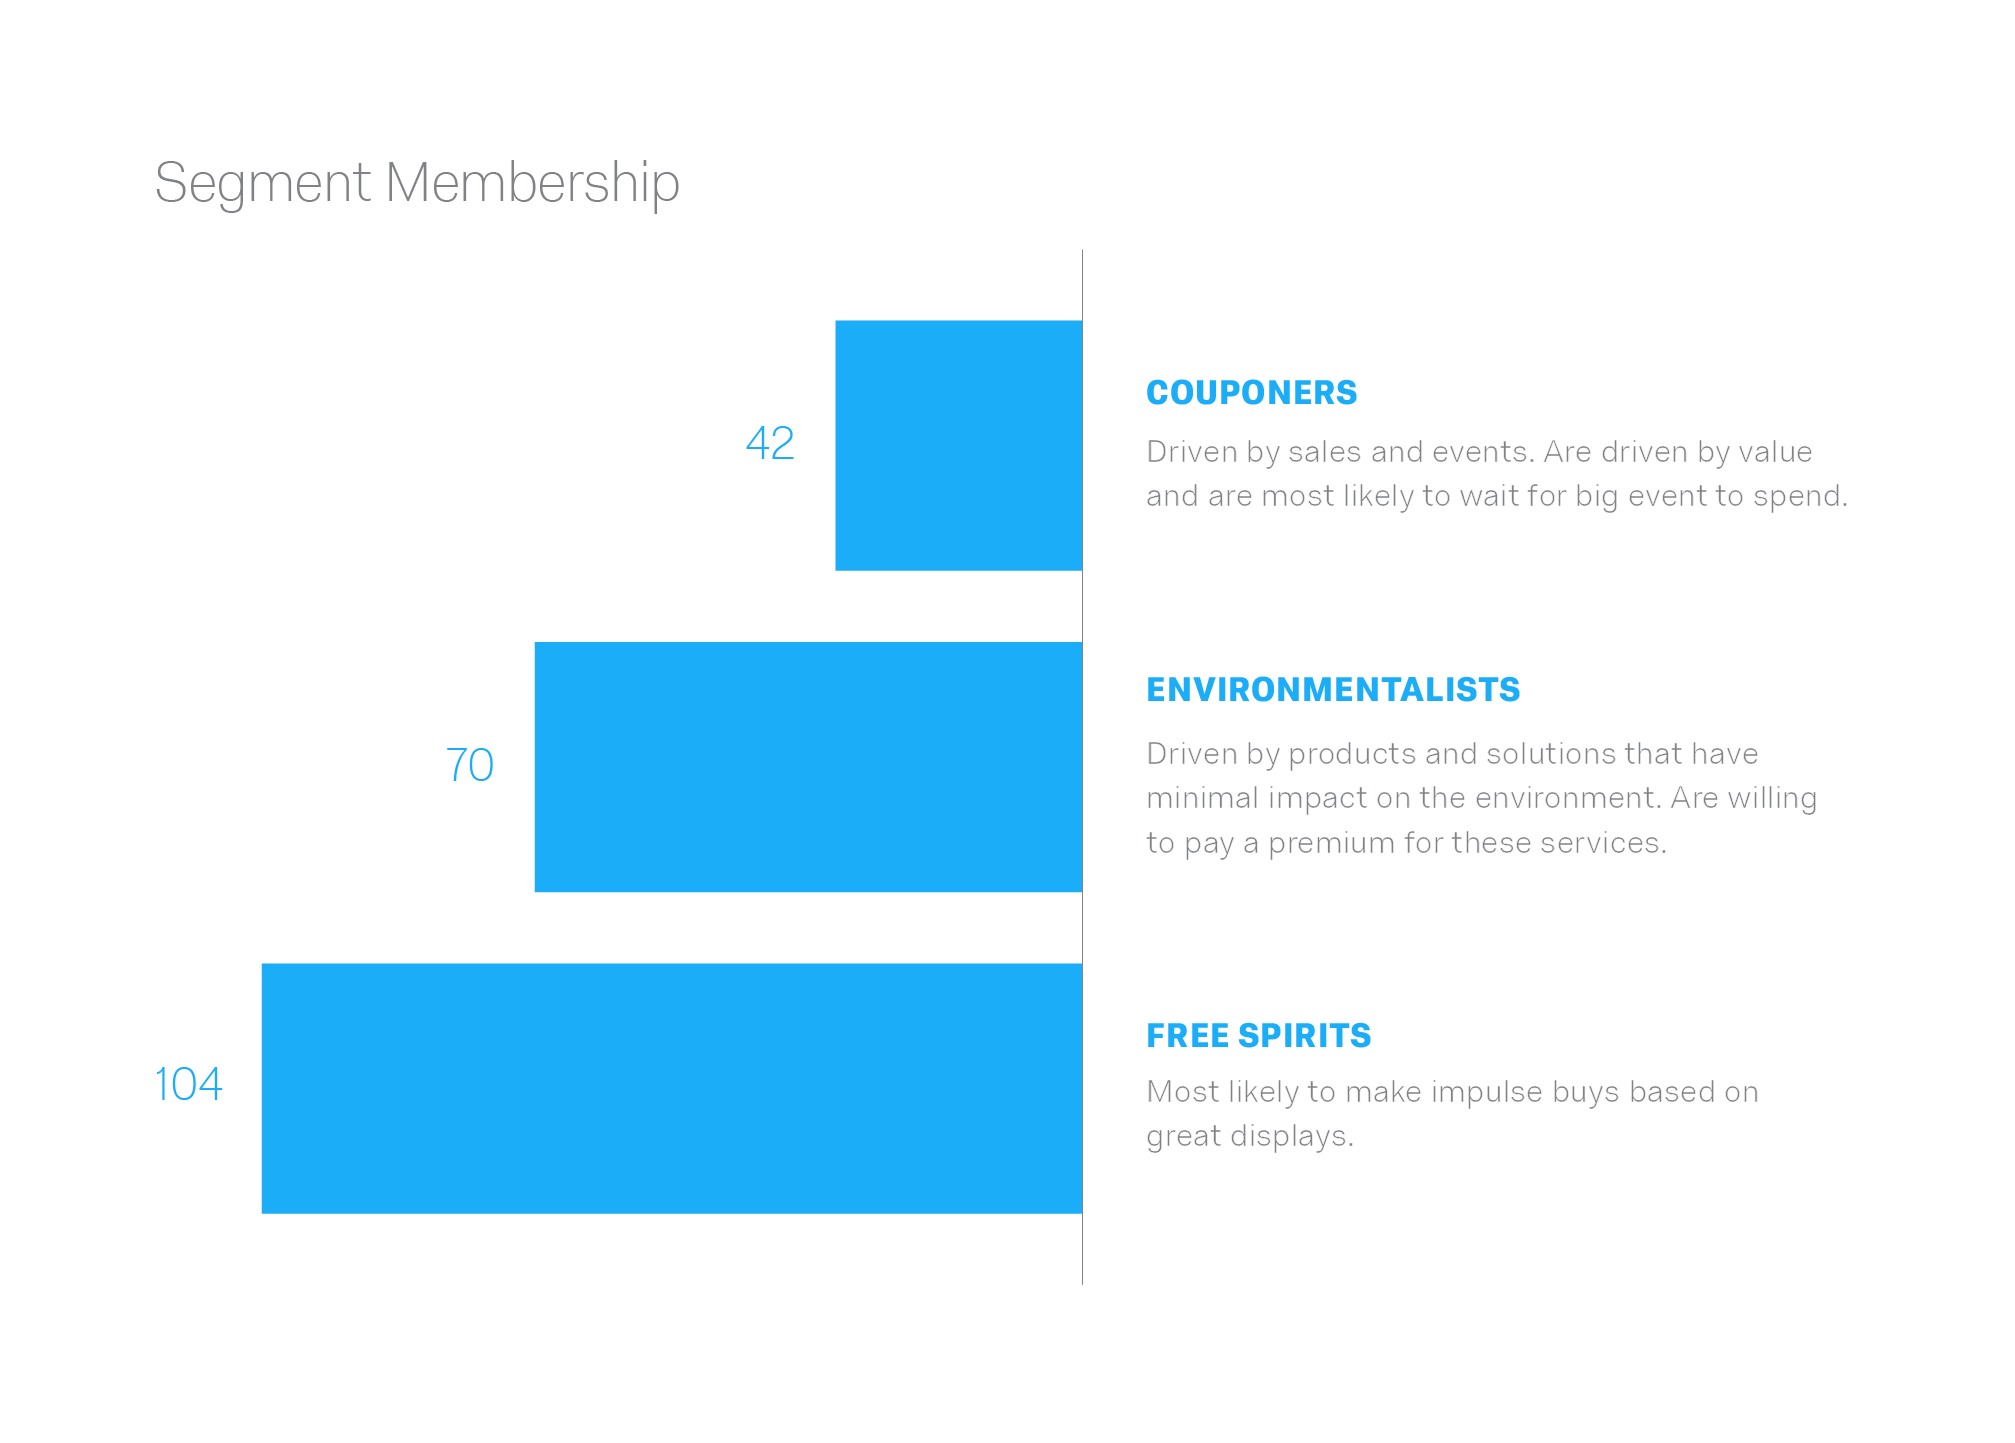 segment customers for memberships